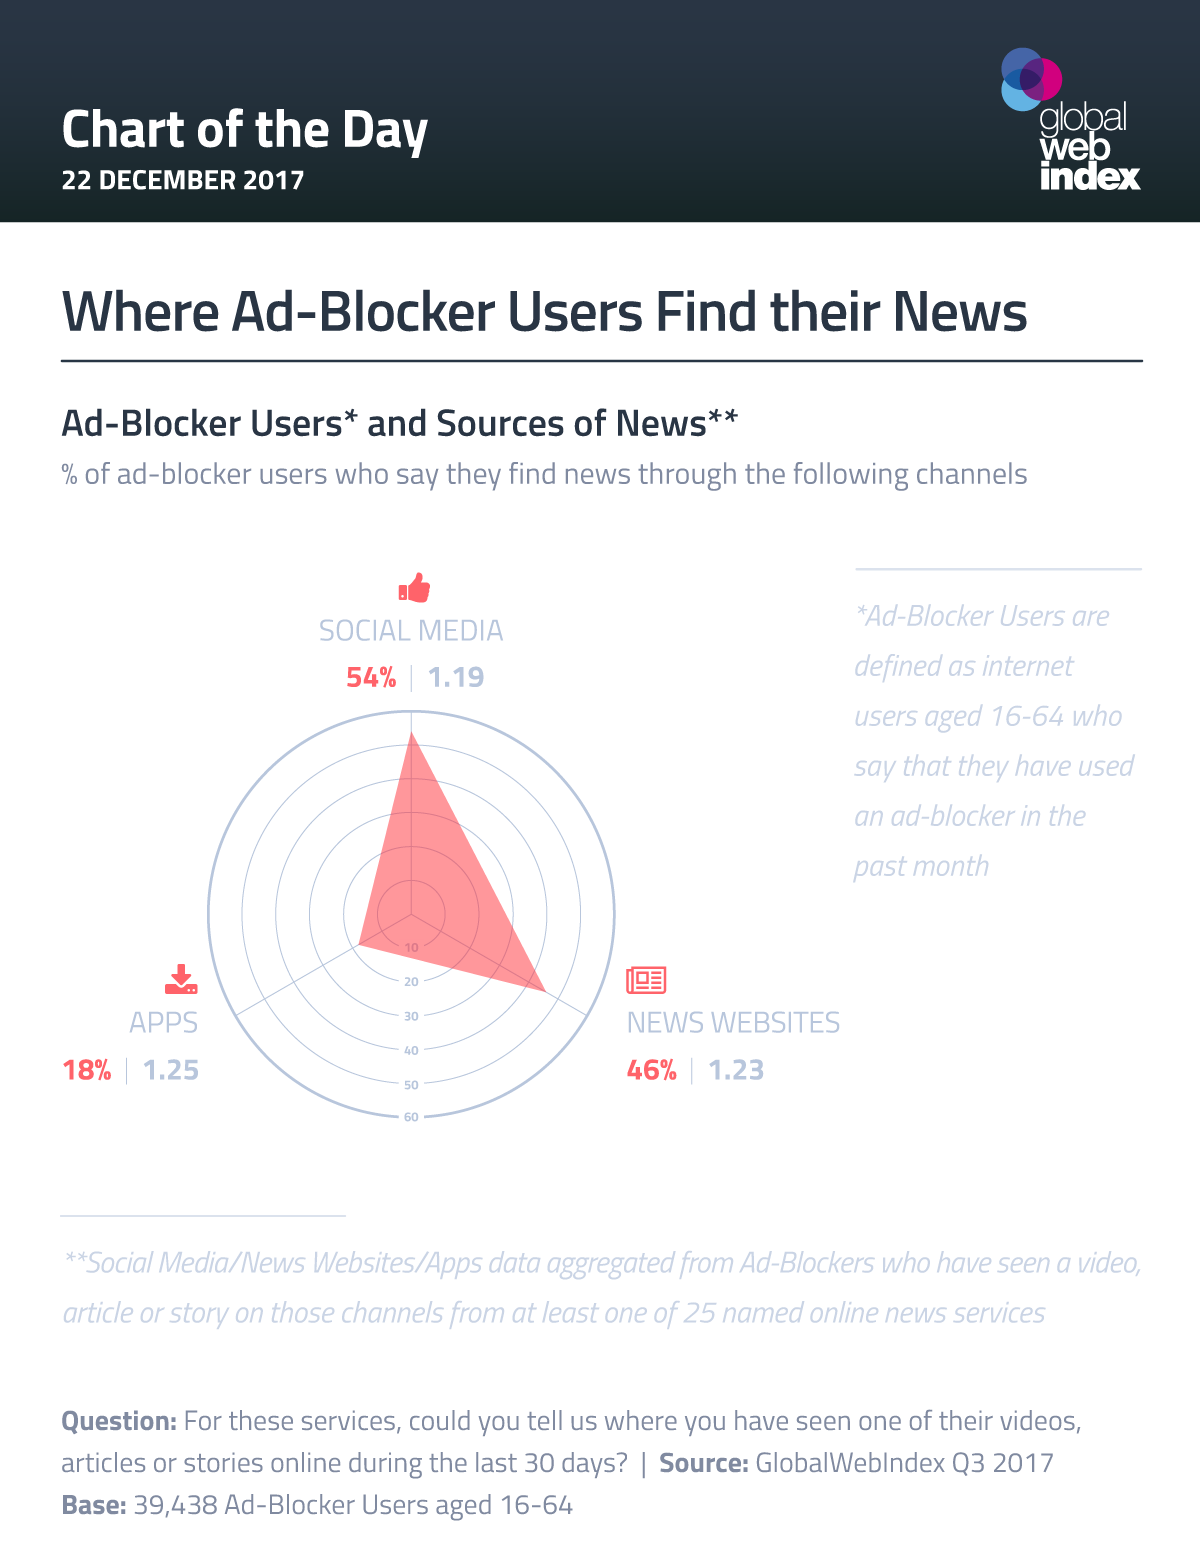 Where Ad-Blocker Users Find their News